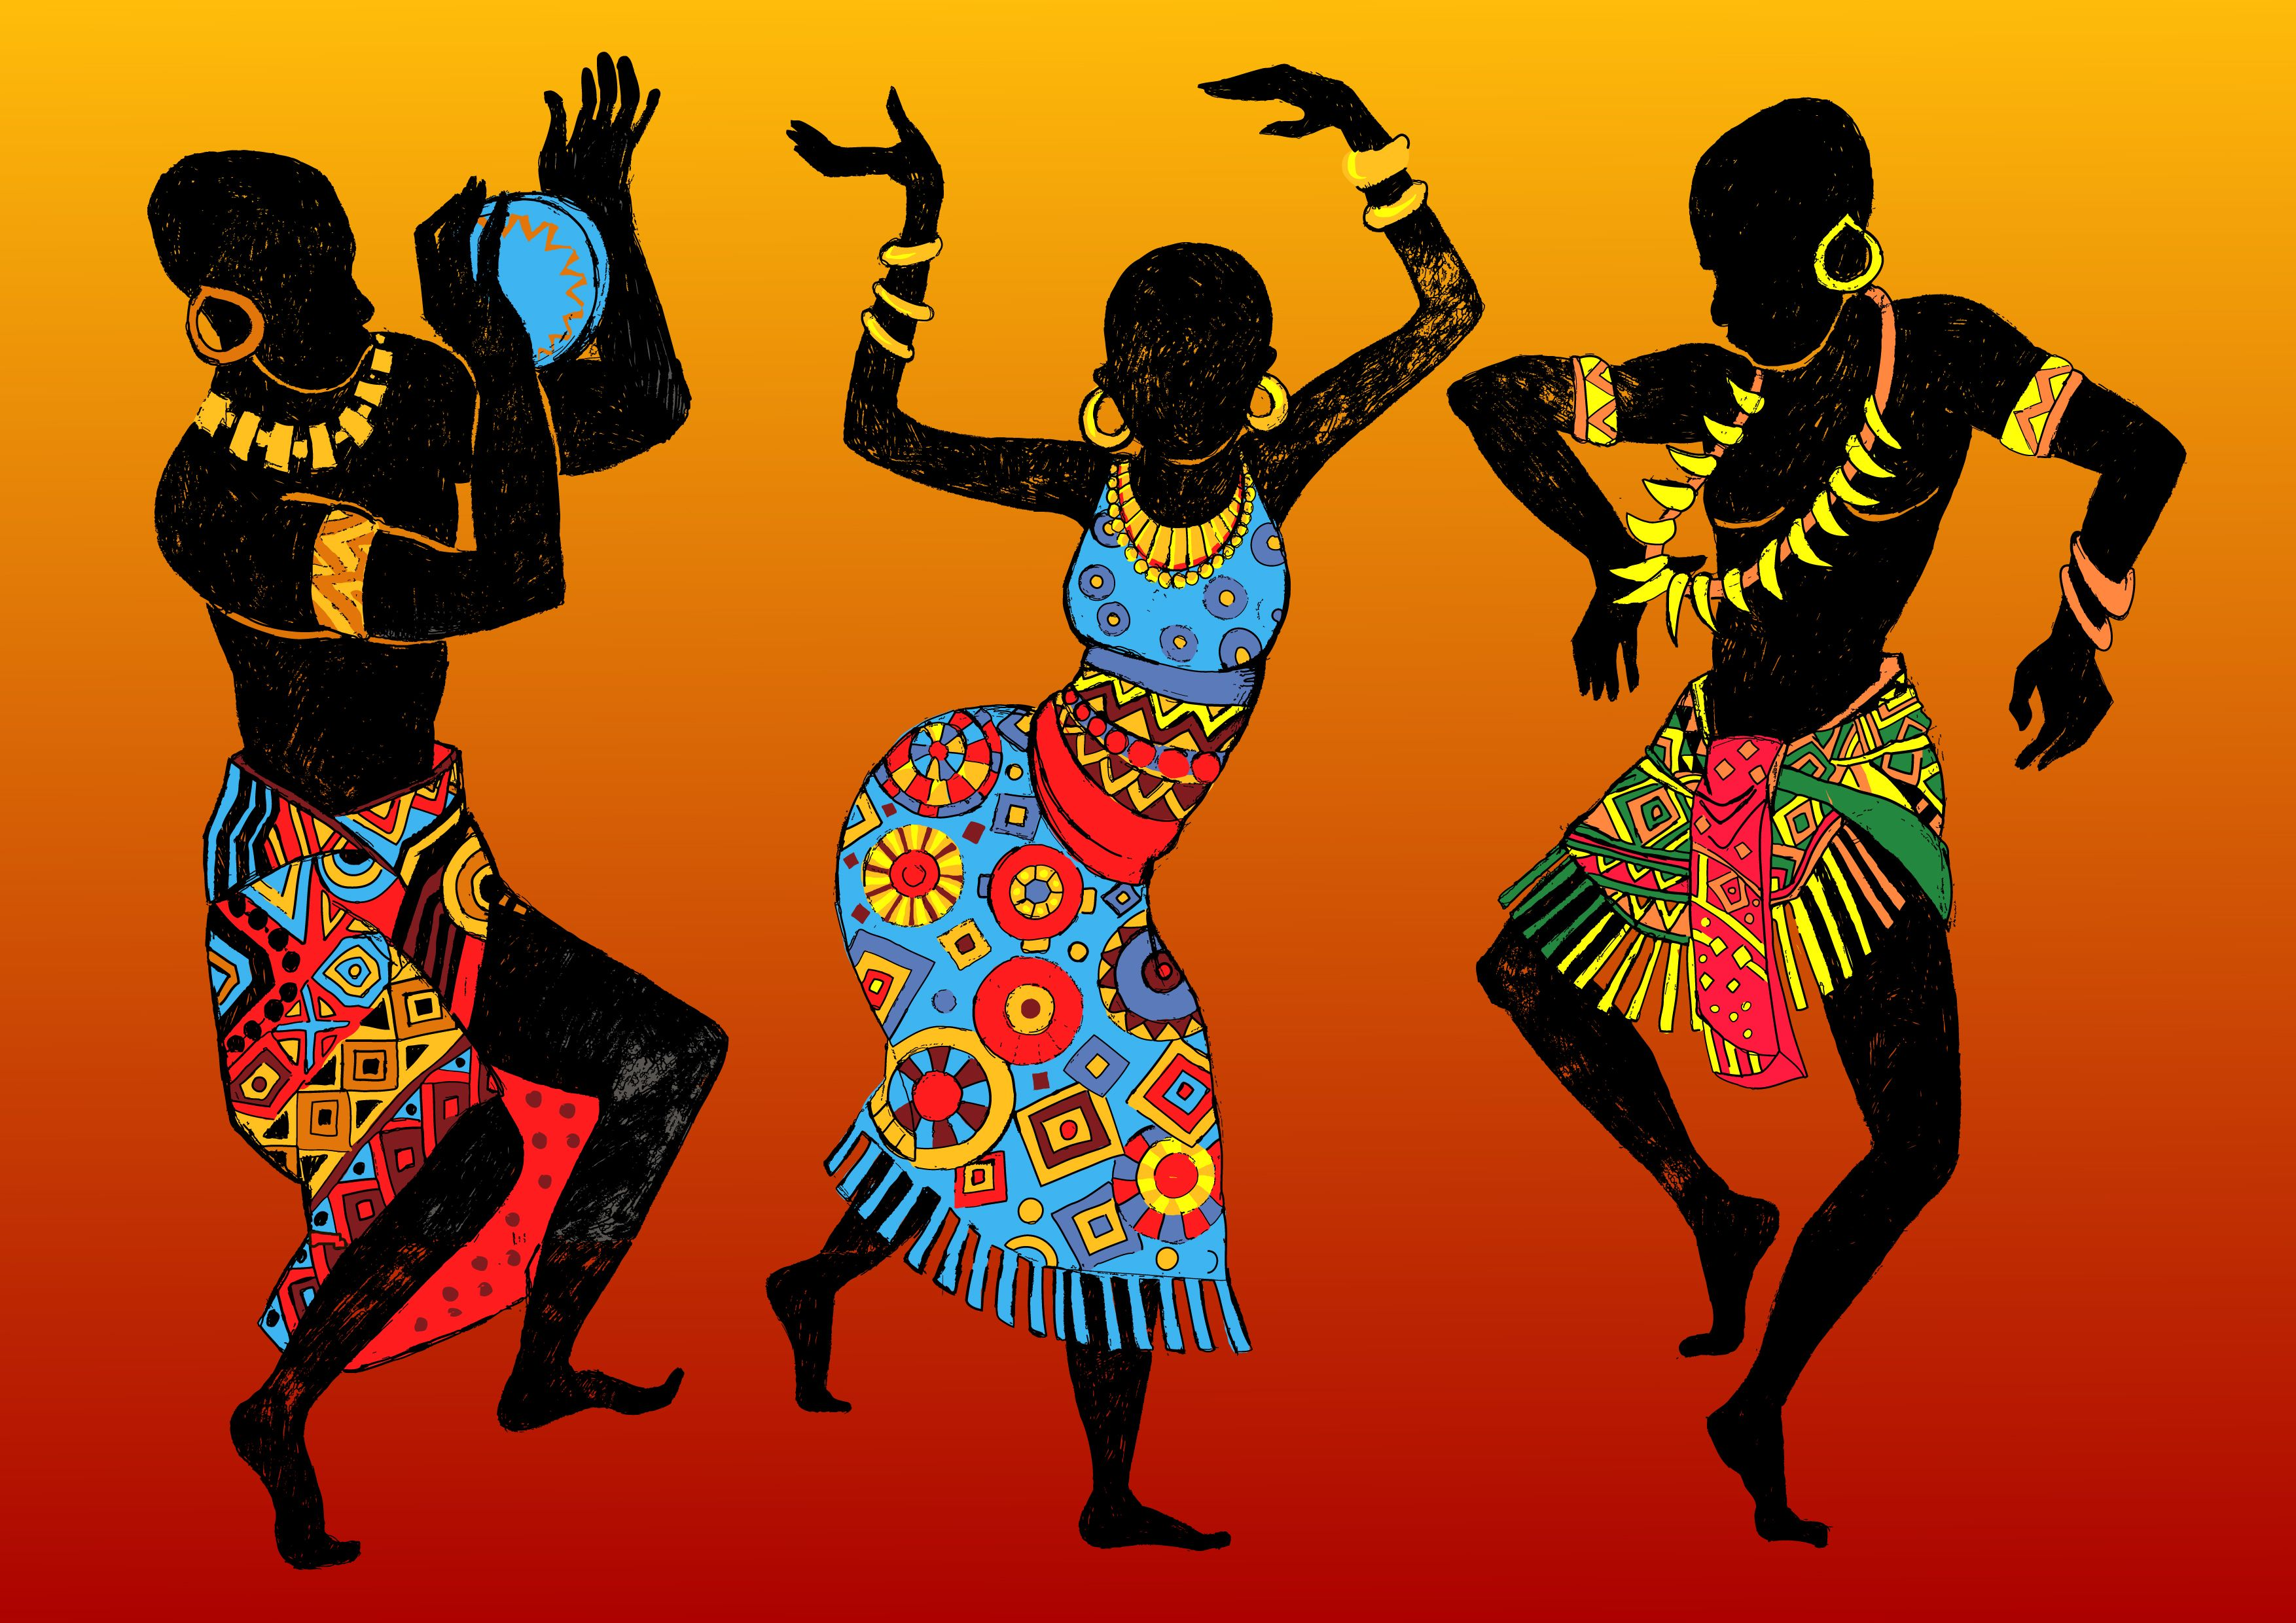 Want to enjoy a true West African experience? Listen to some